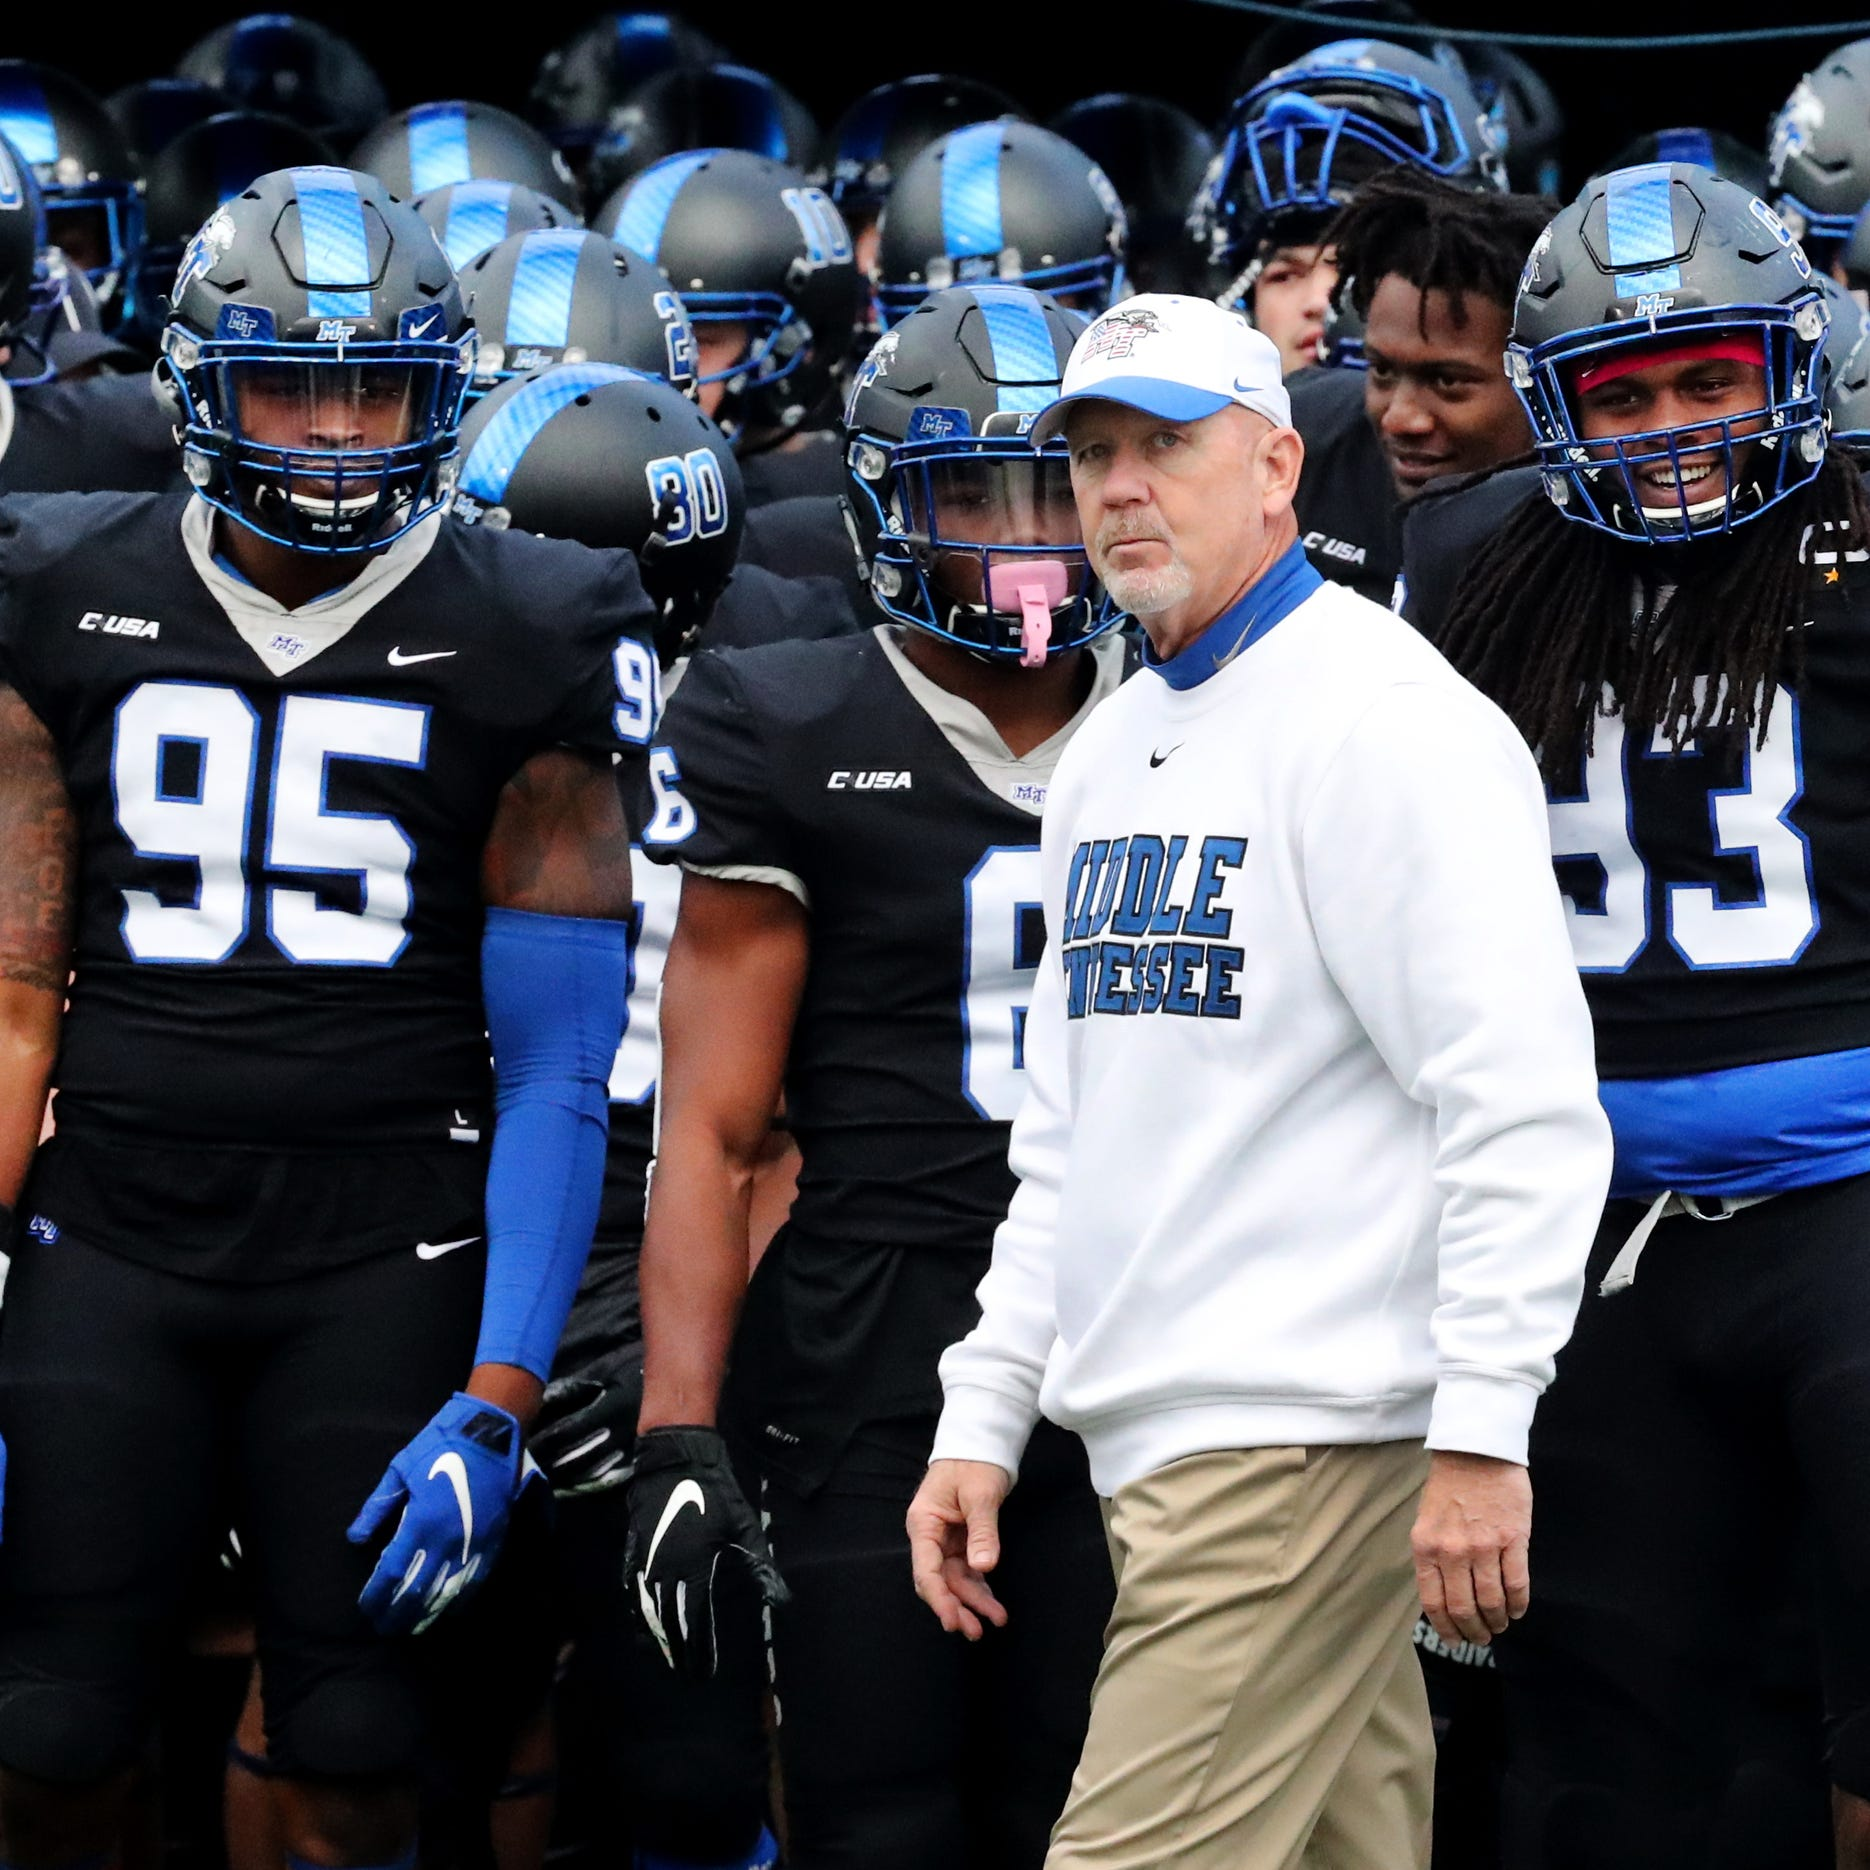 MTSU football schedule 2019 includes trips to Michigan and Iowa, home game vs Duke